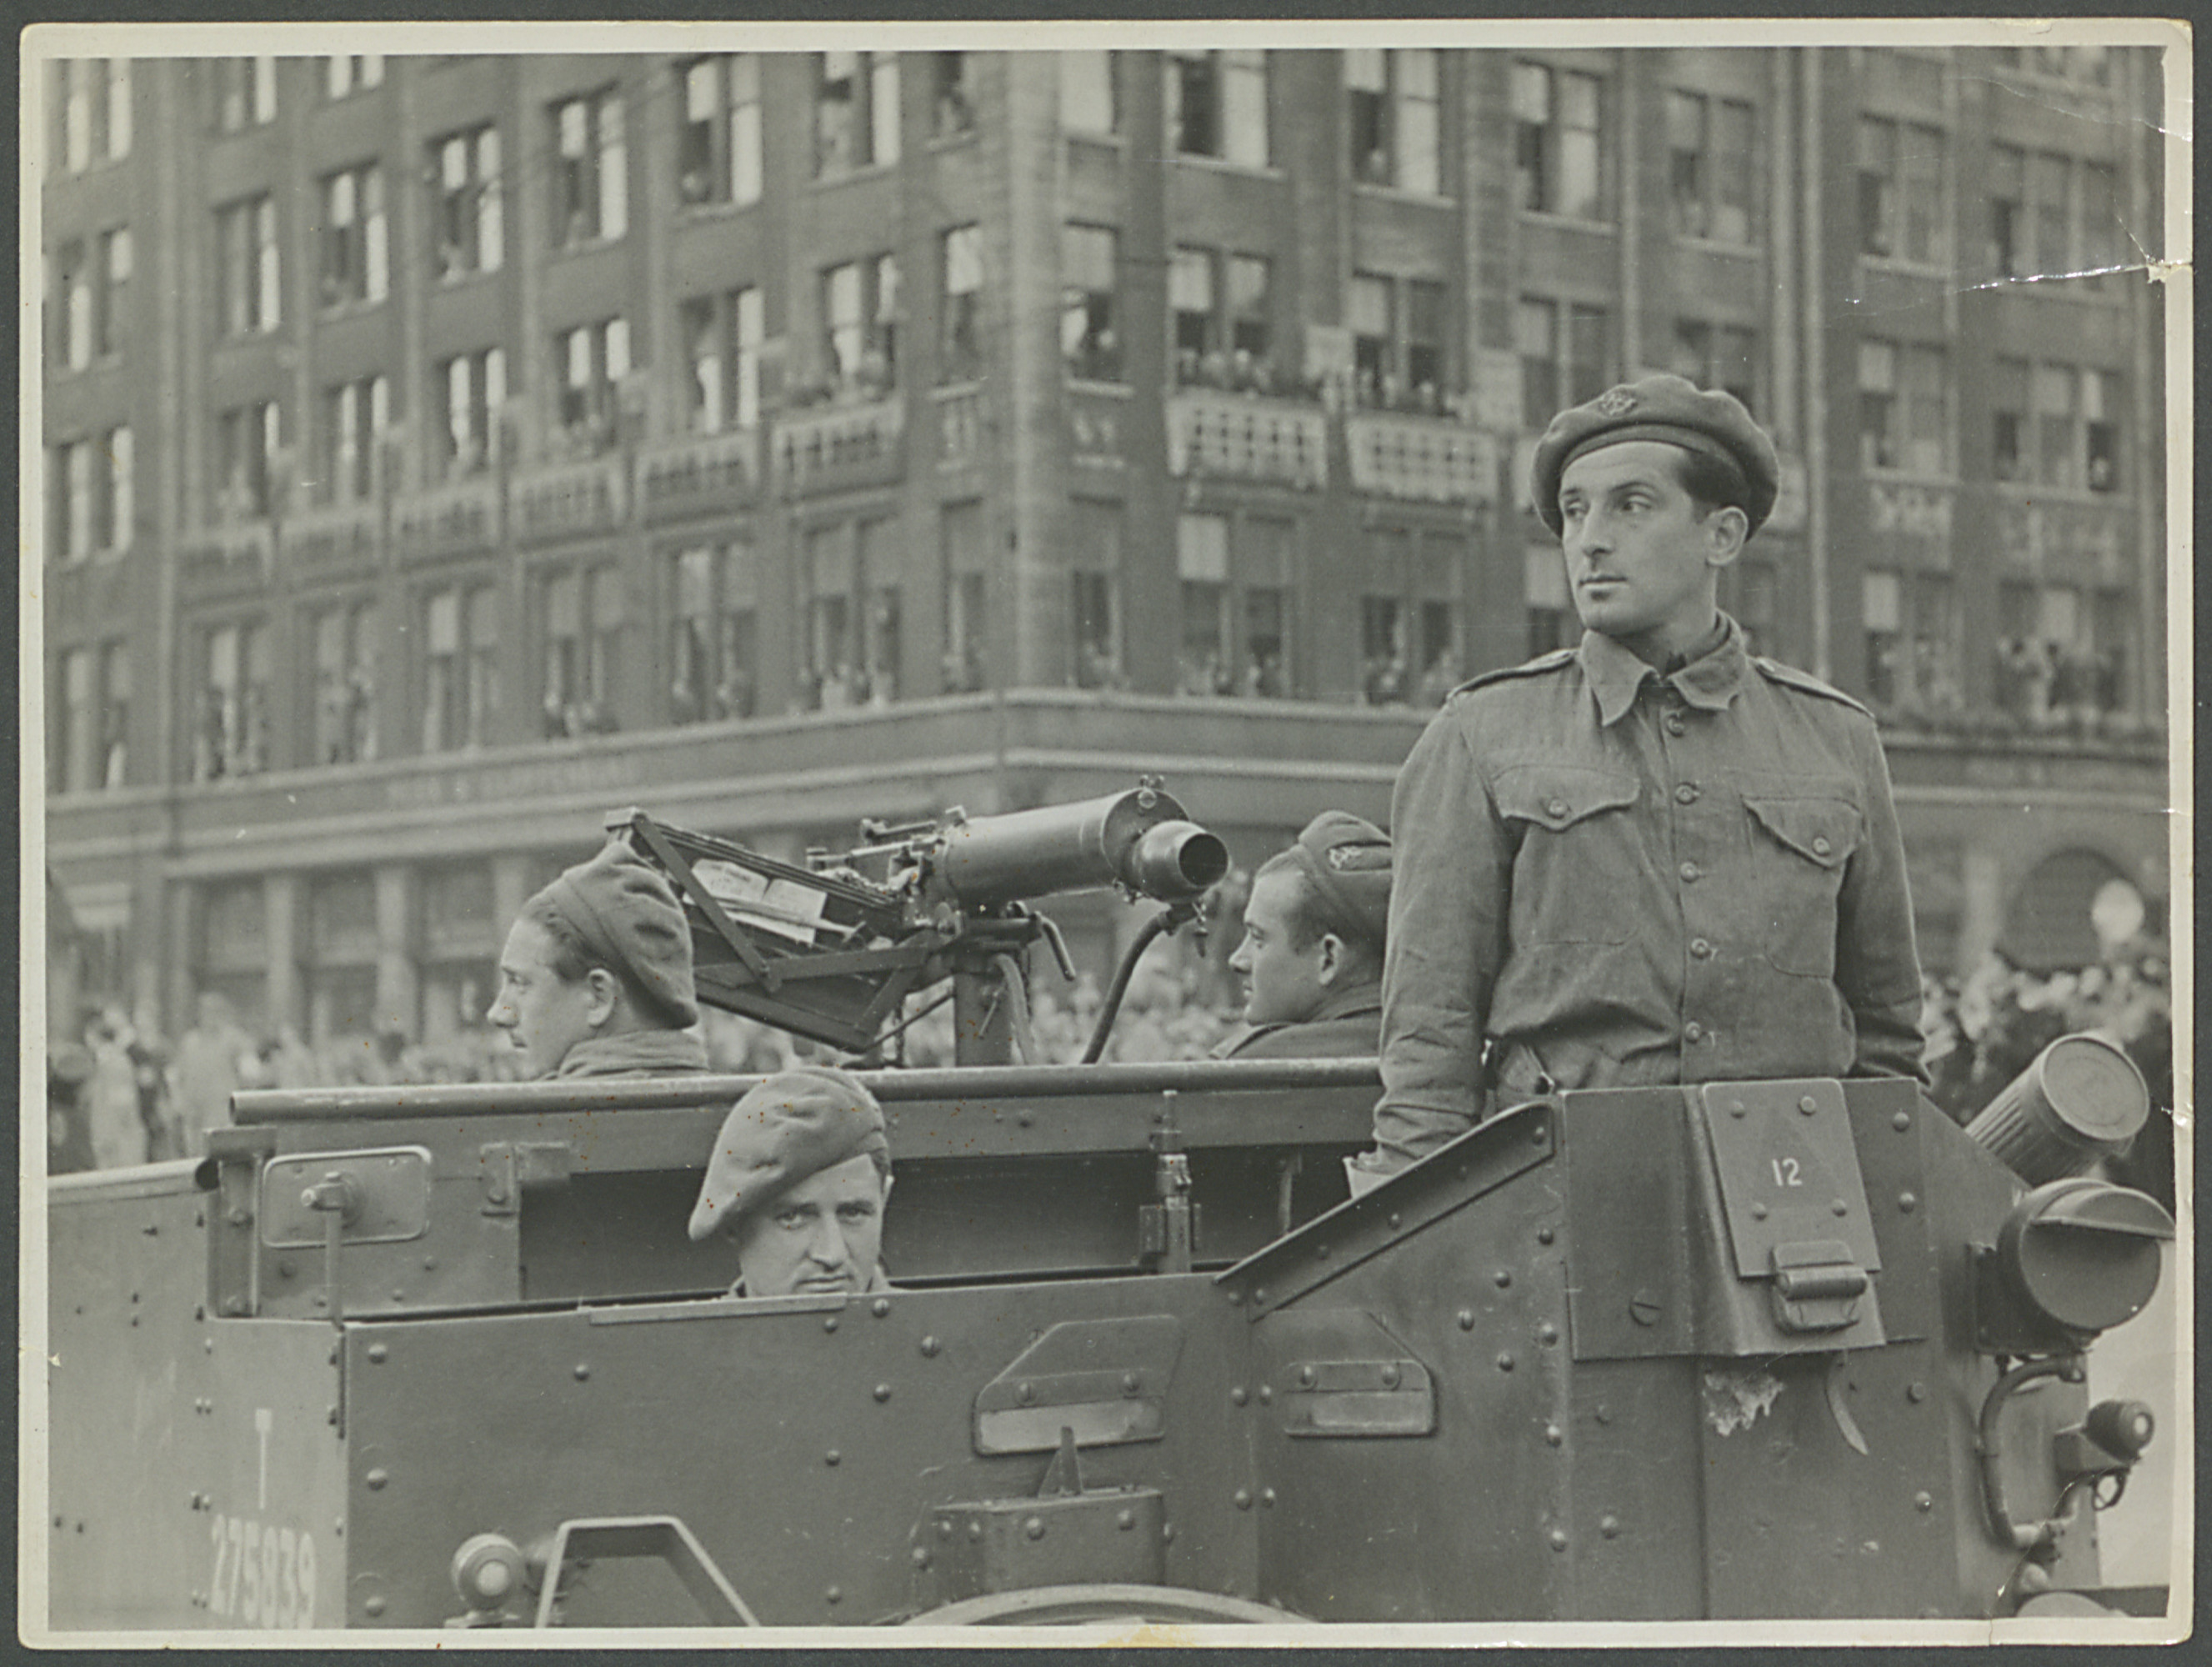 Jacques Grootkerk and members of the Princess Irene Brigade of Dutch Free Forces rides in a military vehicle in the liberation parade in Amsterdam.